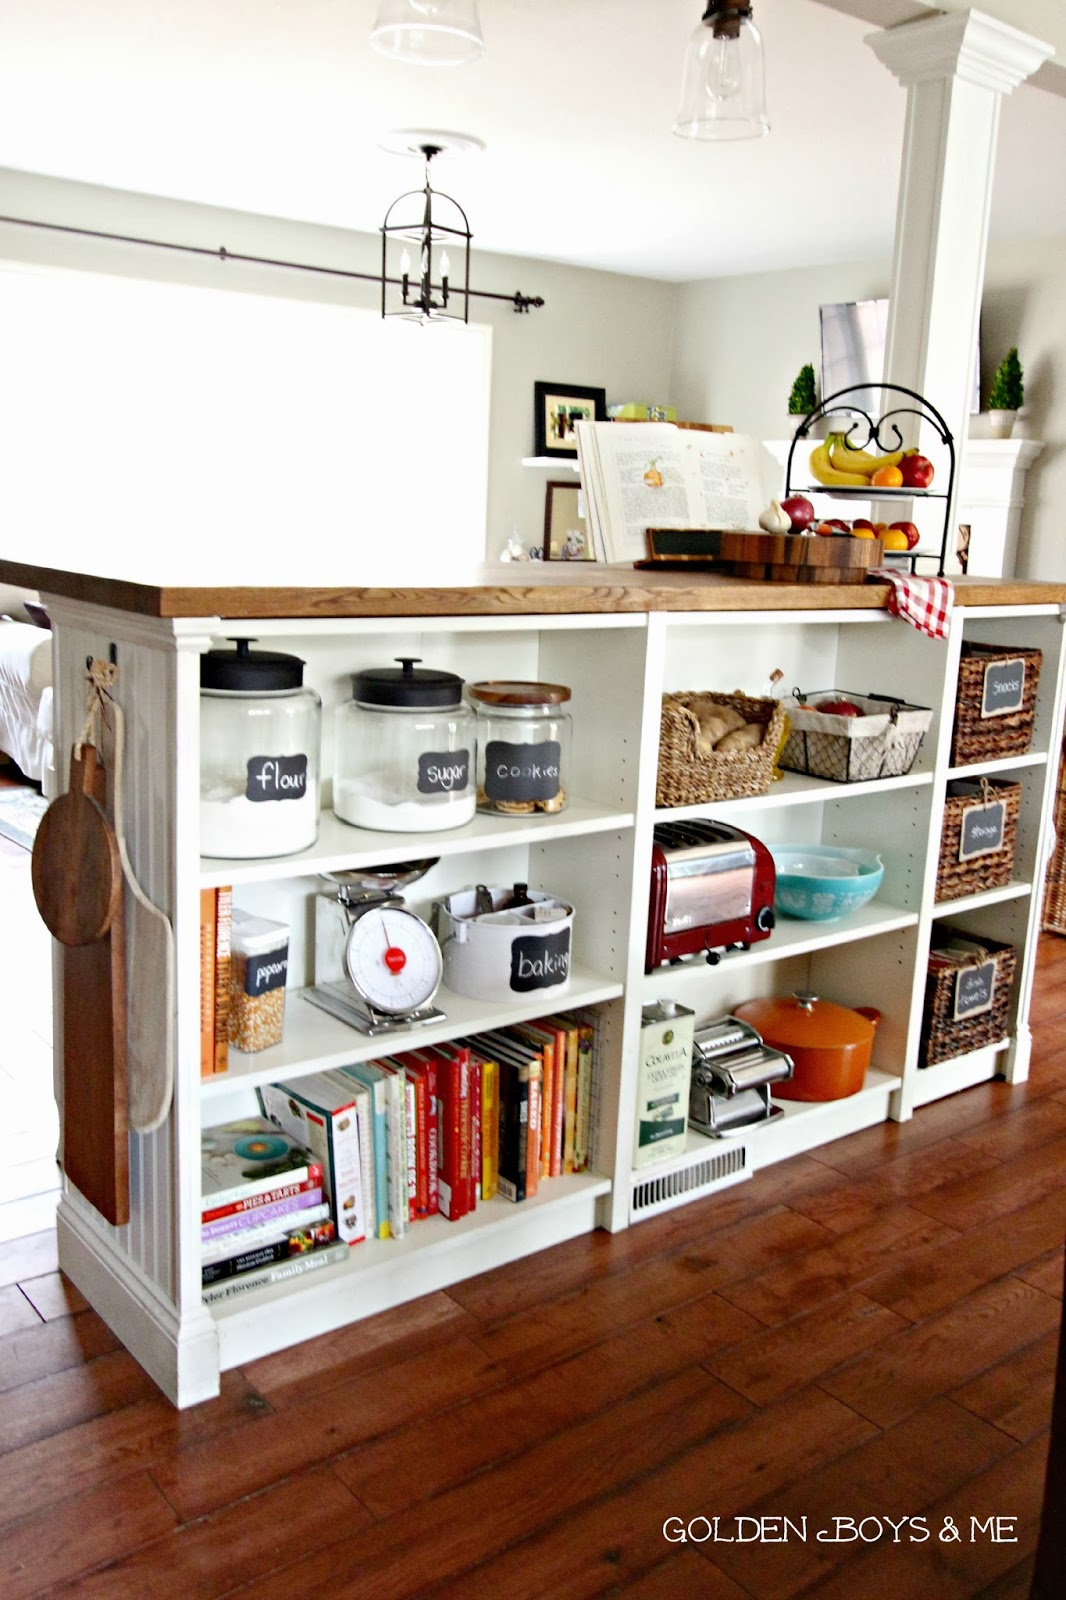 Ikea Hack Billy Bookshelves Kitchen Island Storage with butcher block and  bead board-www.